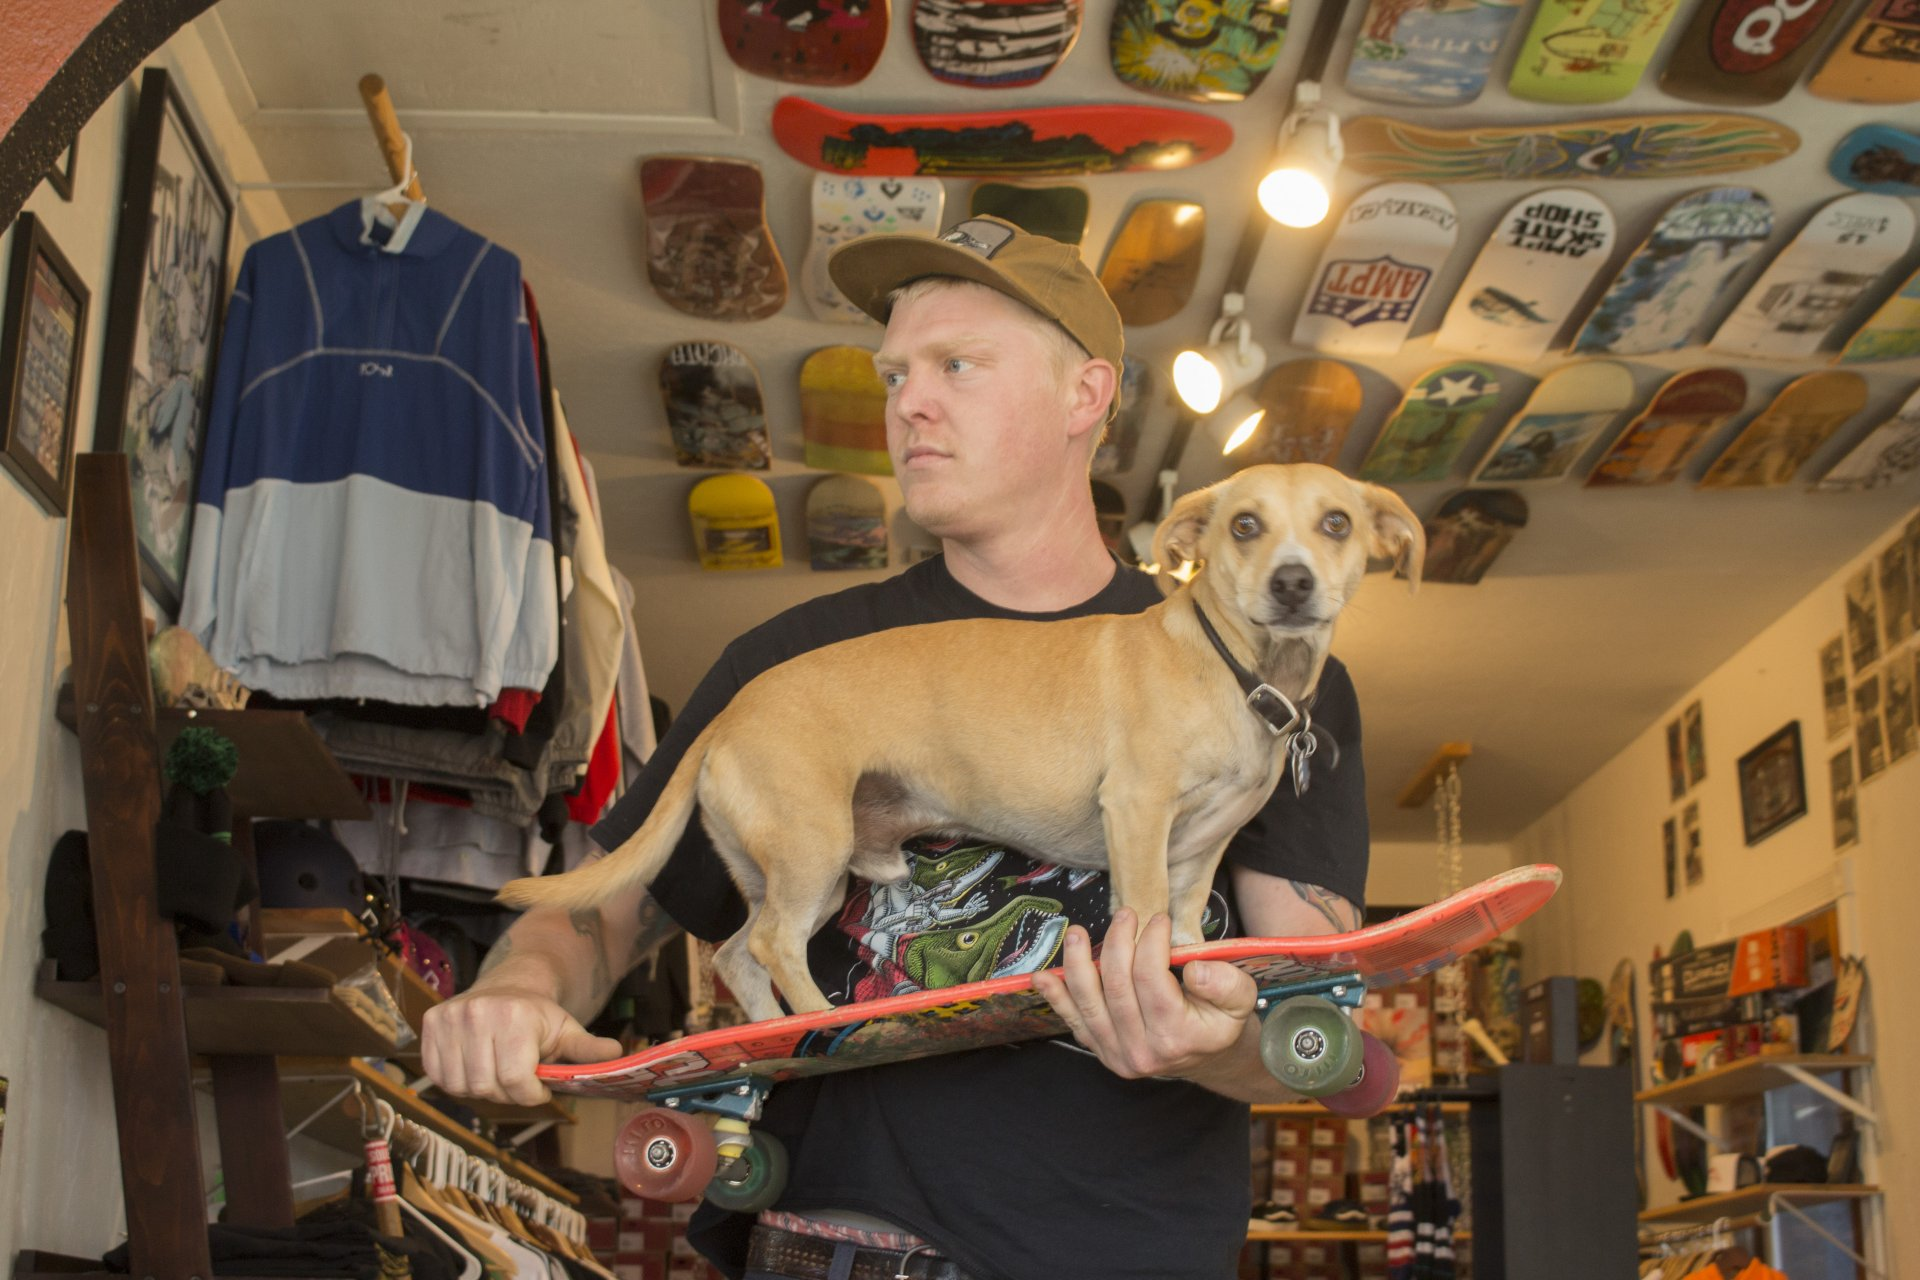 AMPT skate shop owner Derek Russell and his dog Cosmo in their store in Arcata, CA. | Photo by Sean Bendon